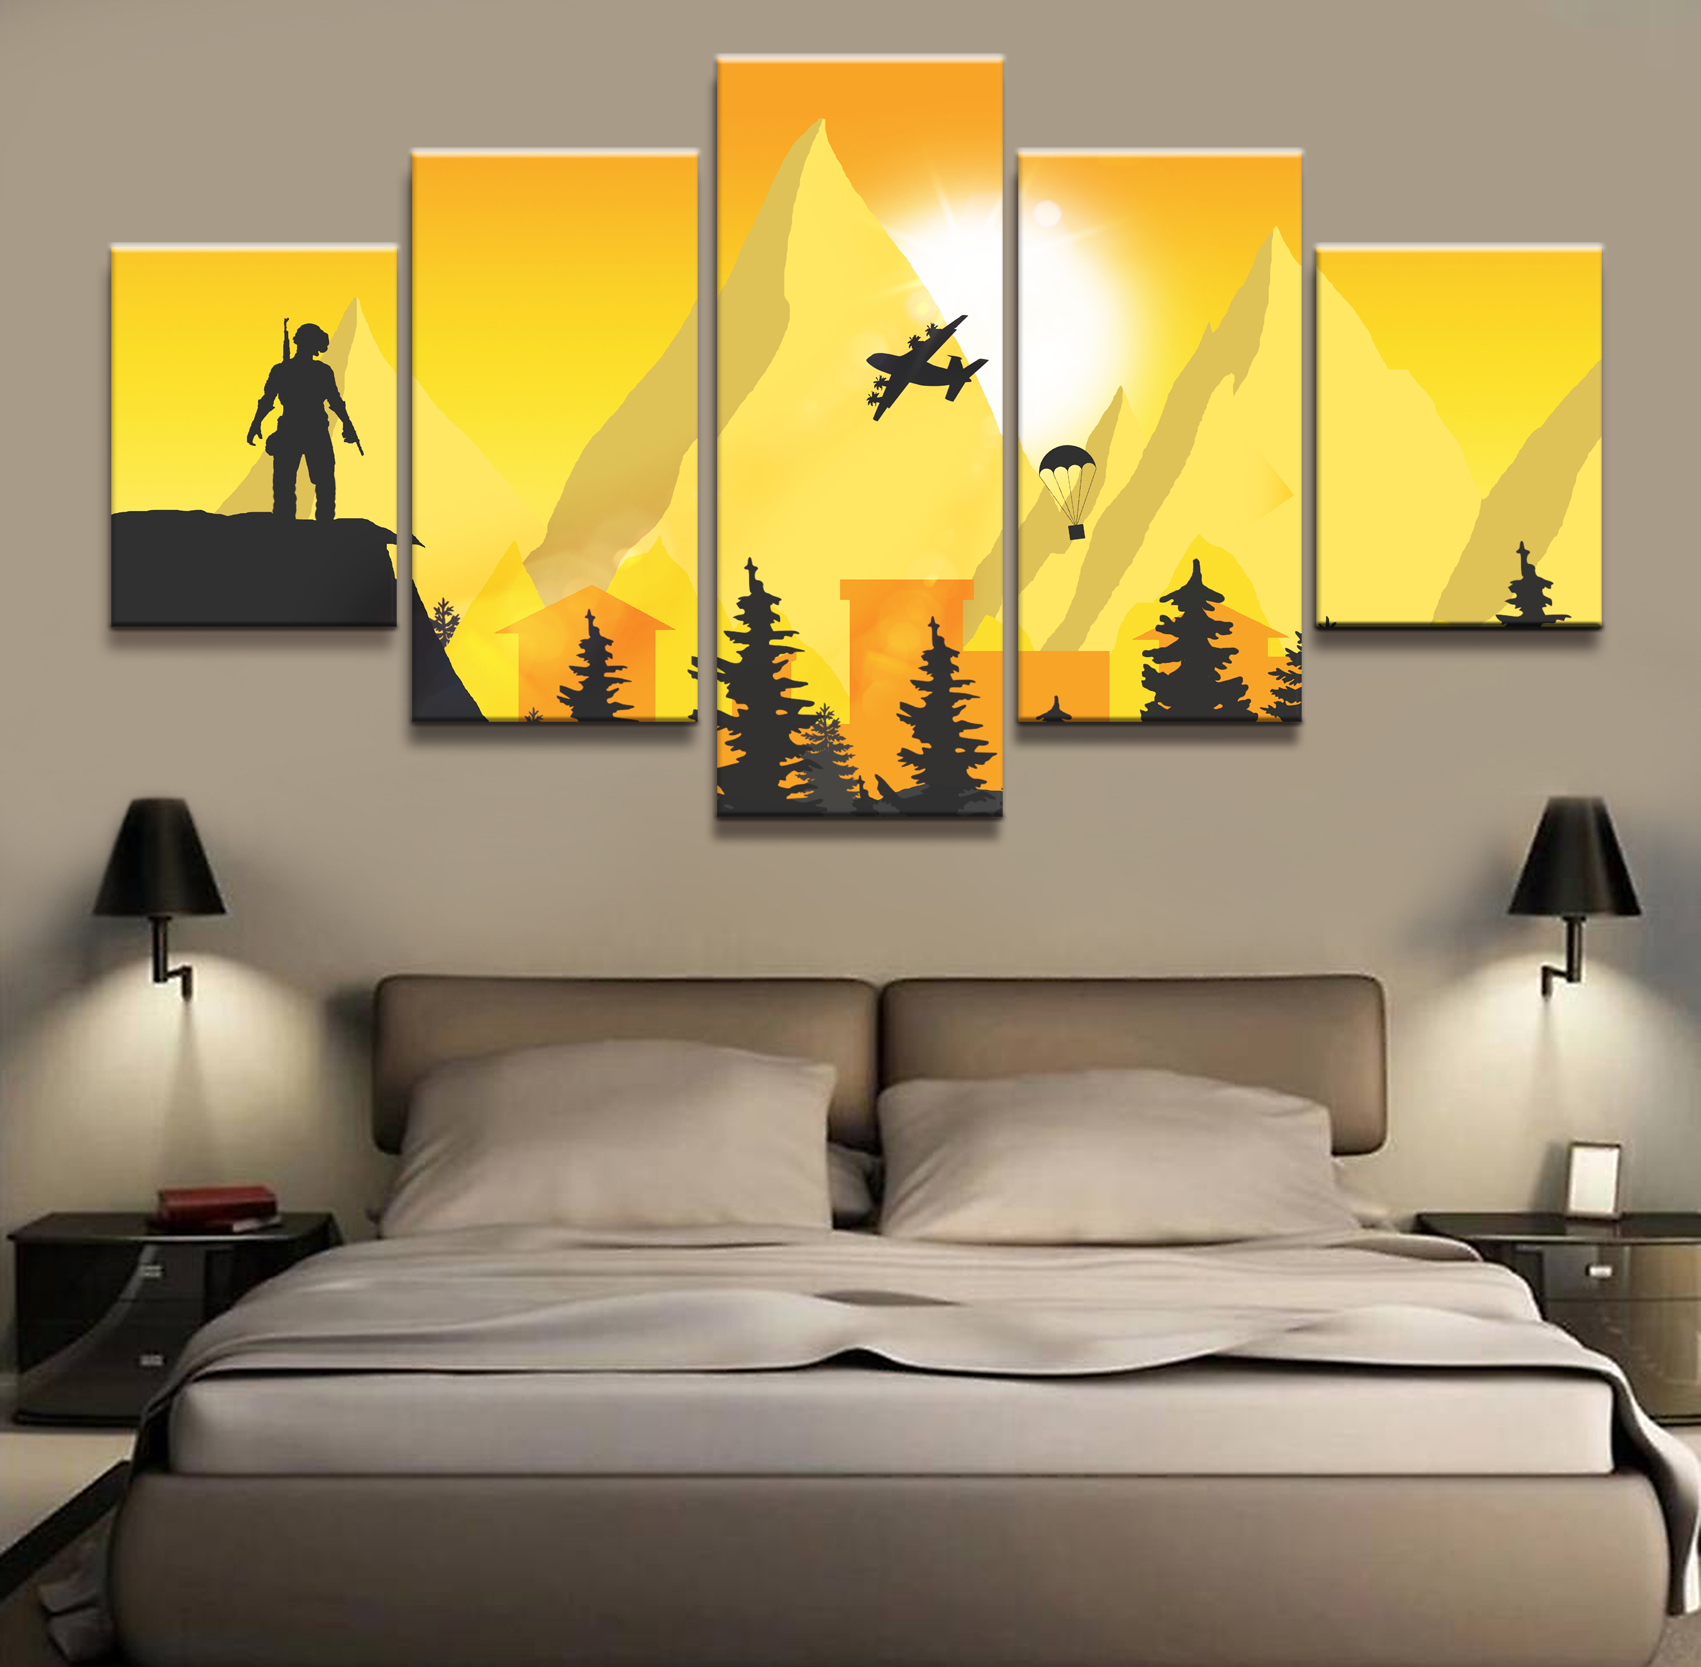 5 Piece Pubg Playerunknowns Battlegrounds Game Poster Artwork Wall Painting on Canvas for Home Decor